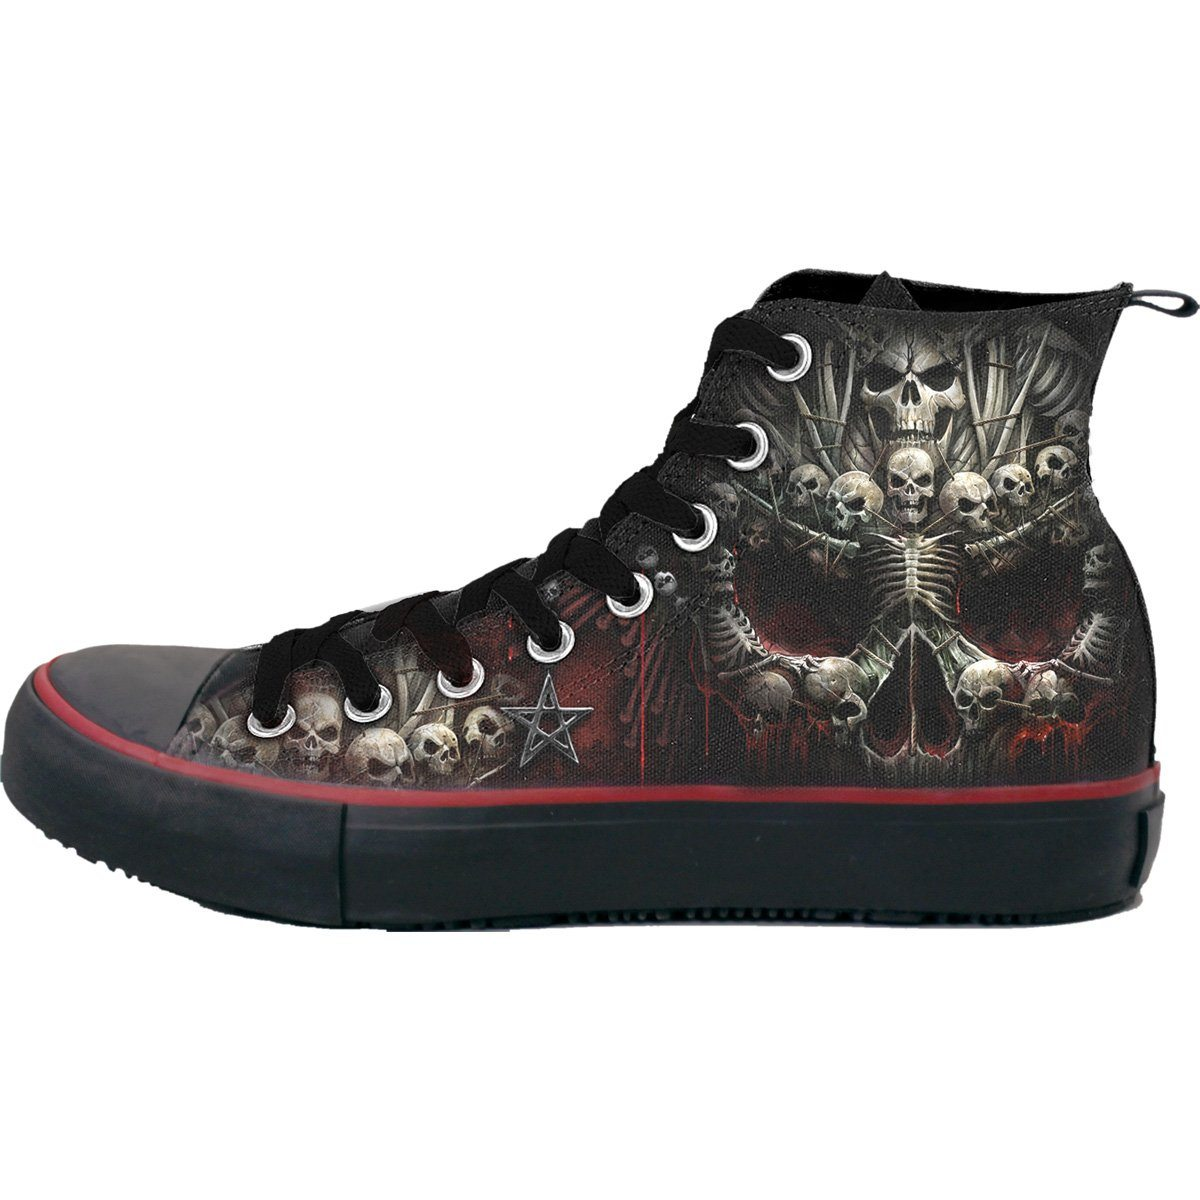 Death Skulls Men's High-Top Sneakers